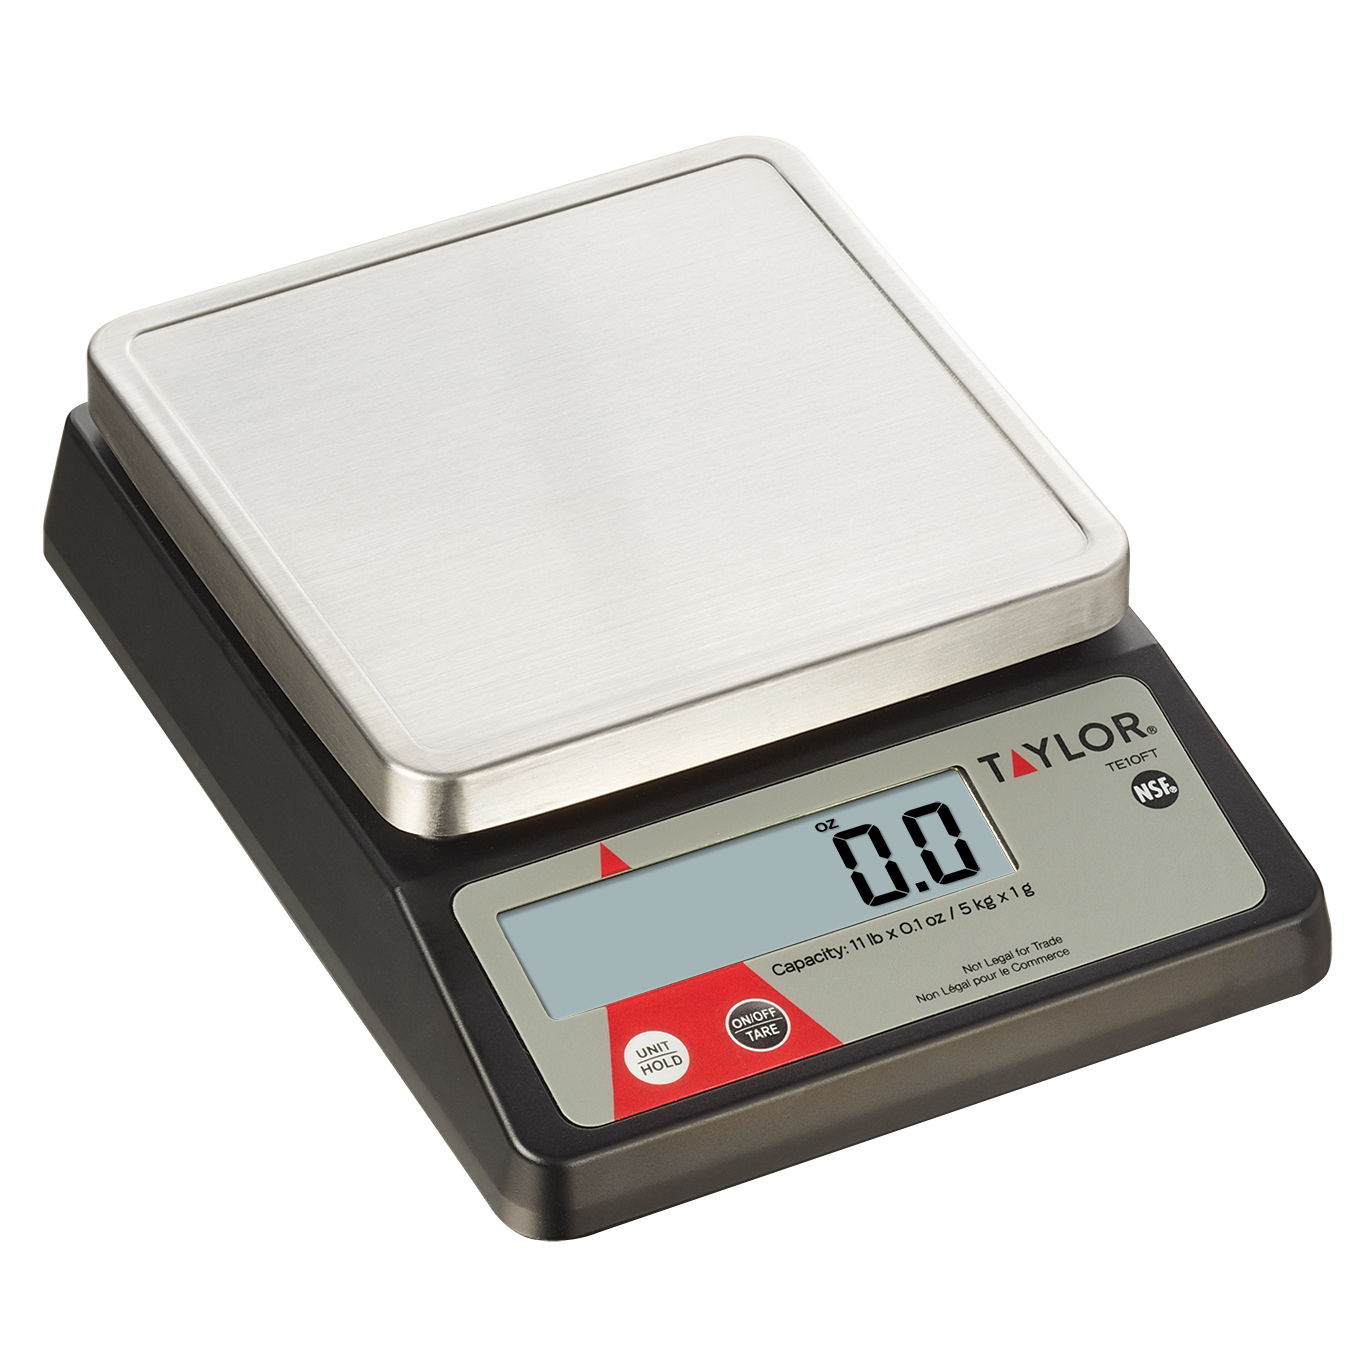 2903-50 Taylor Precision TE10FT scale, portion, digital